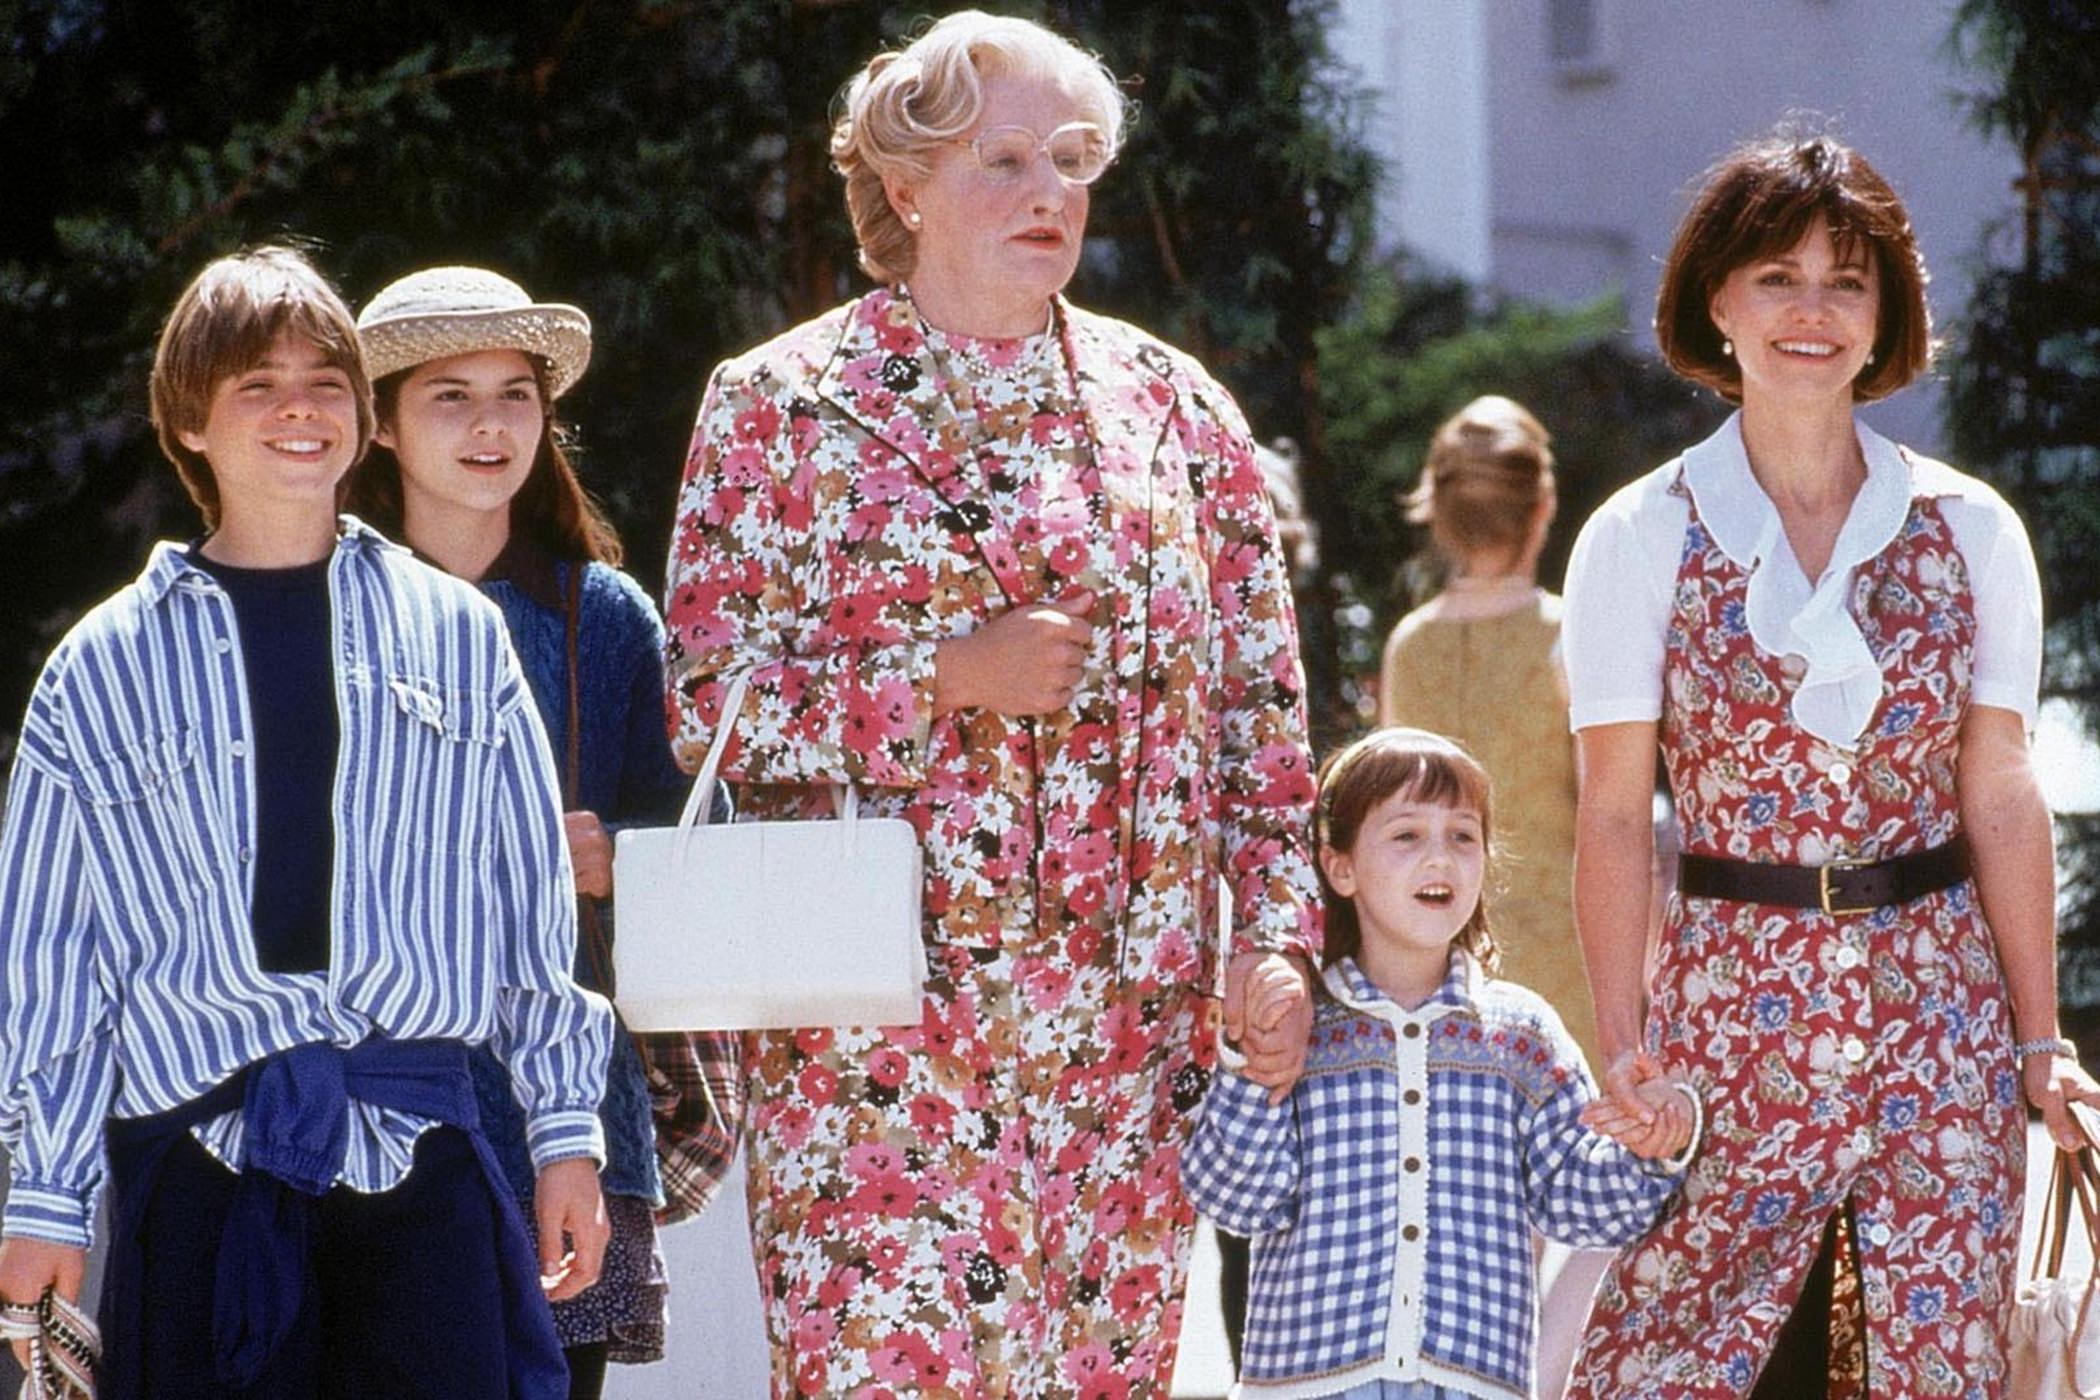 Madame doubtfire robin williams sally field